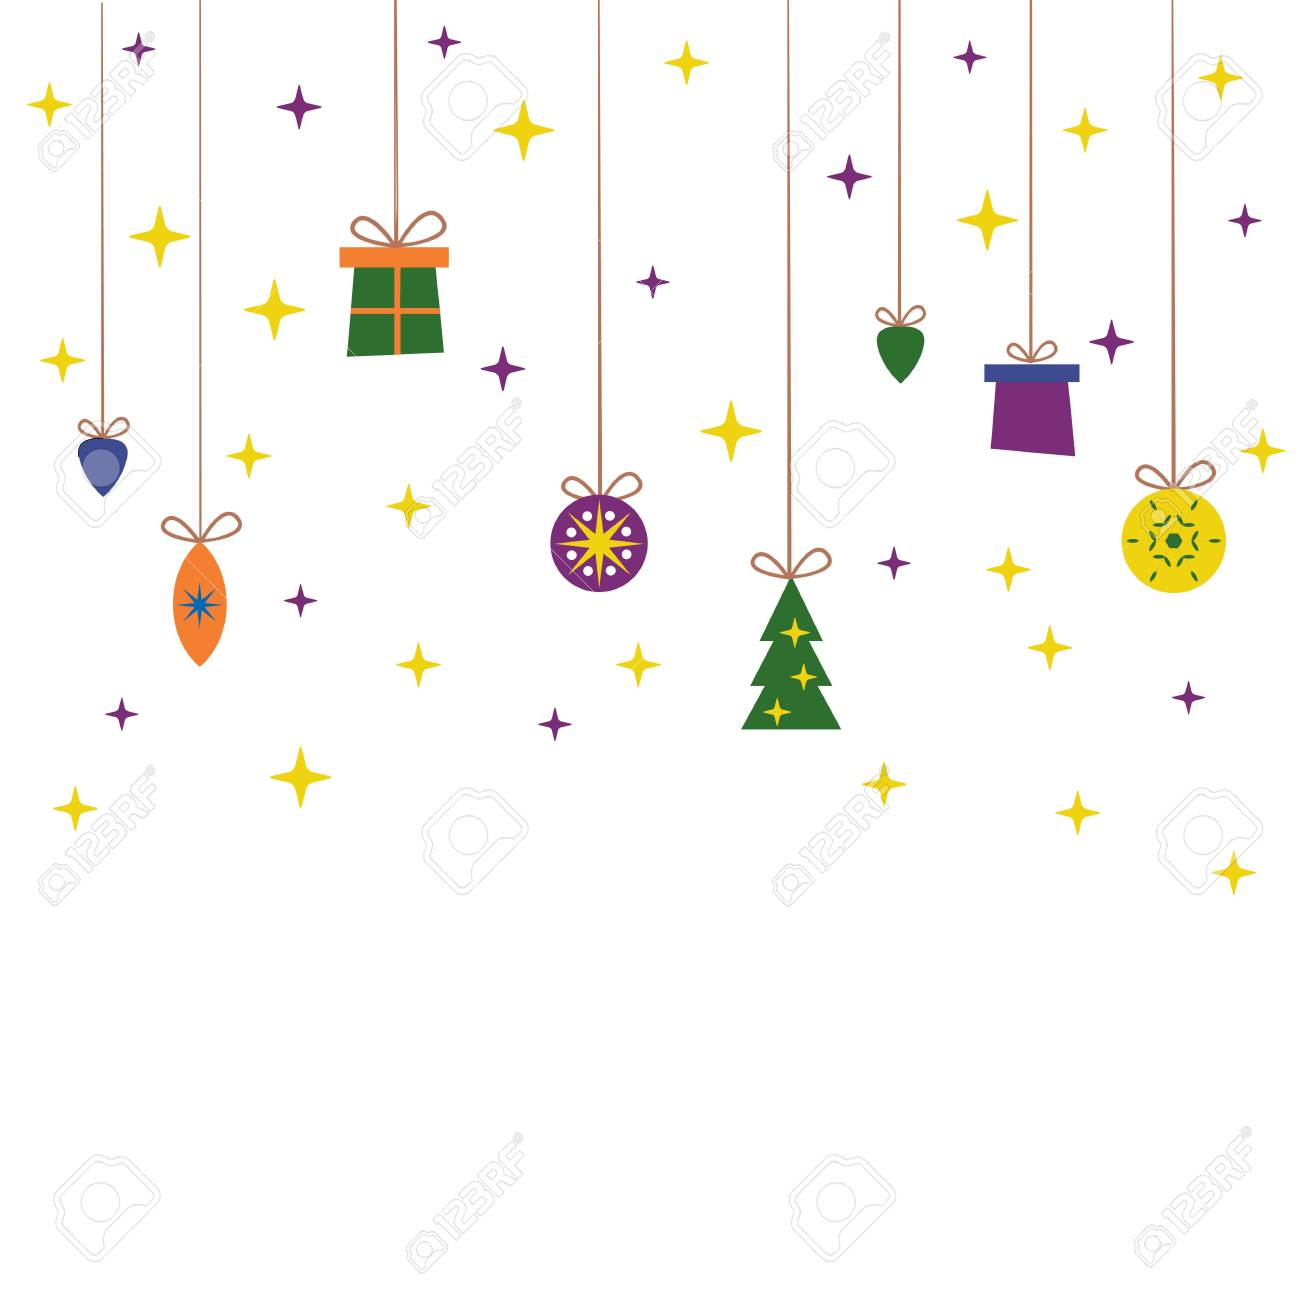 Template For Christmas Cards Invitations Backgrounds And More